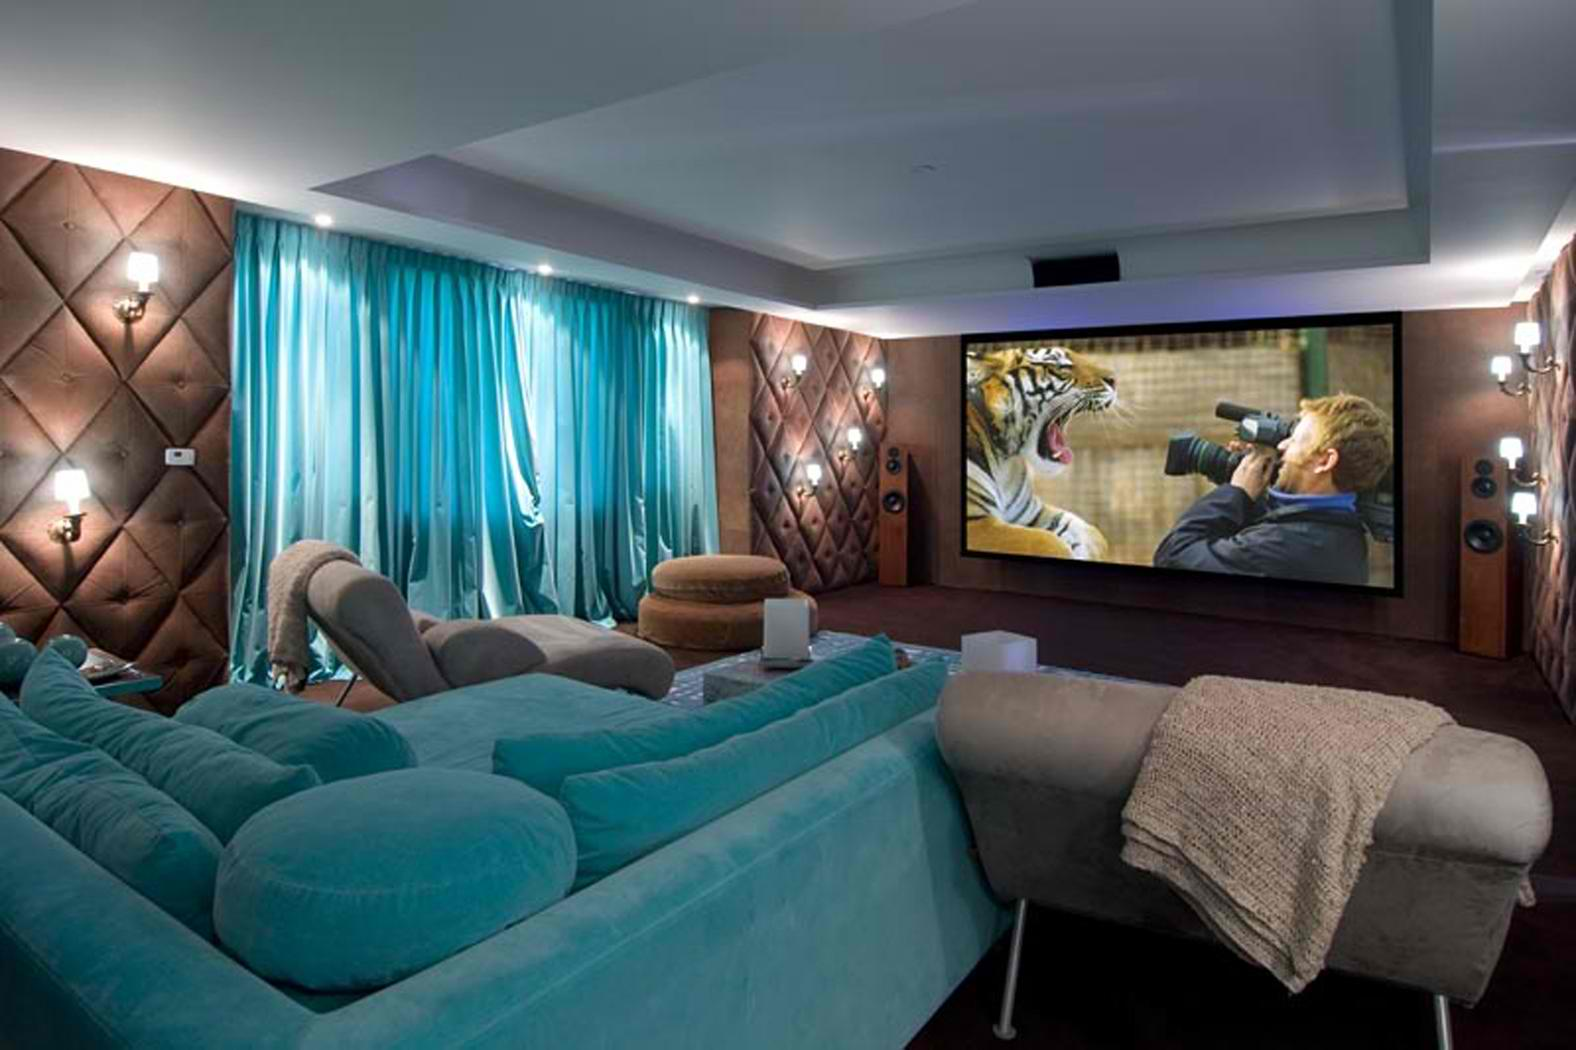 20 stunning home theater rooms that inspire you decoholic - Home cinema design ideas ...